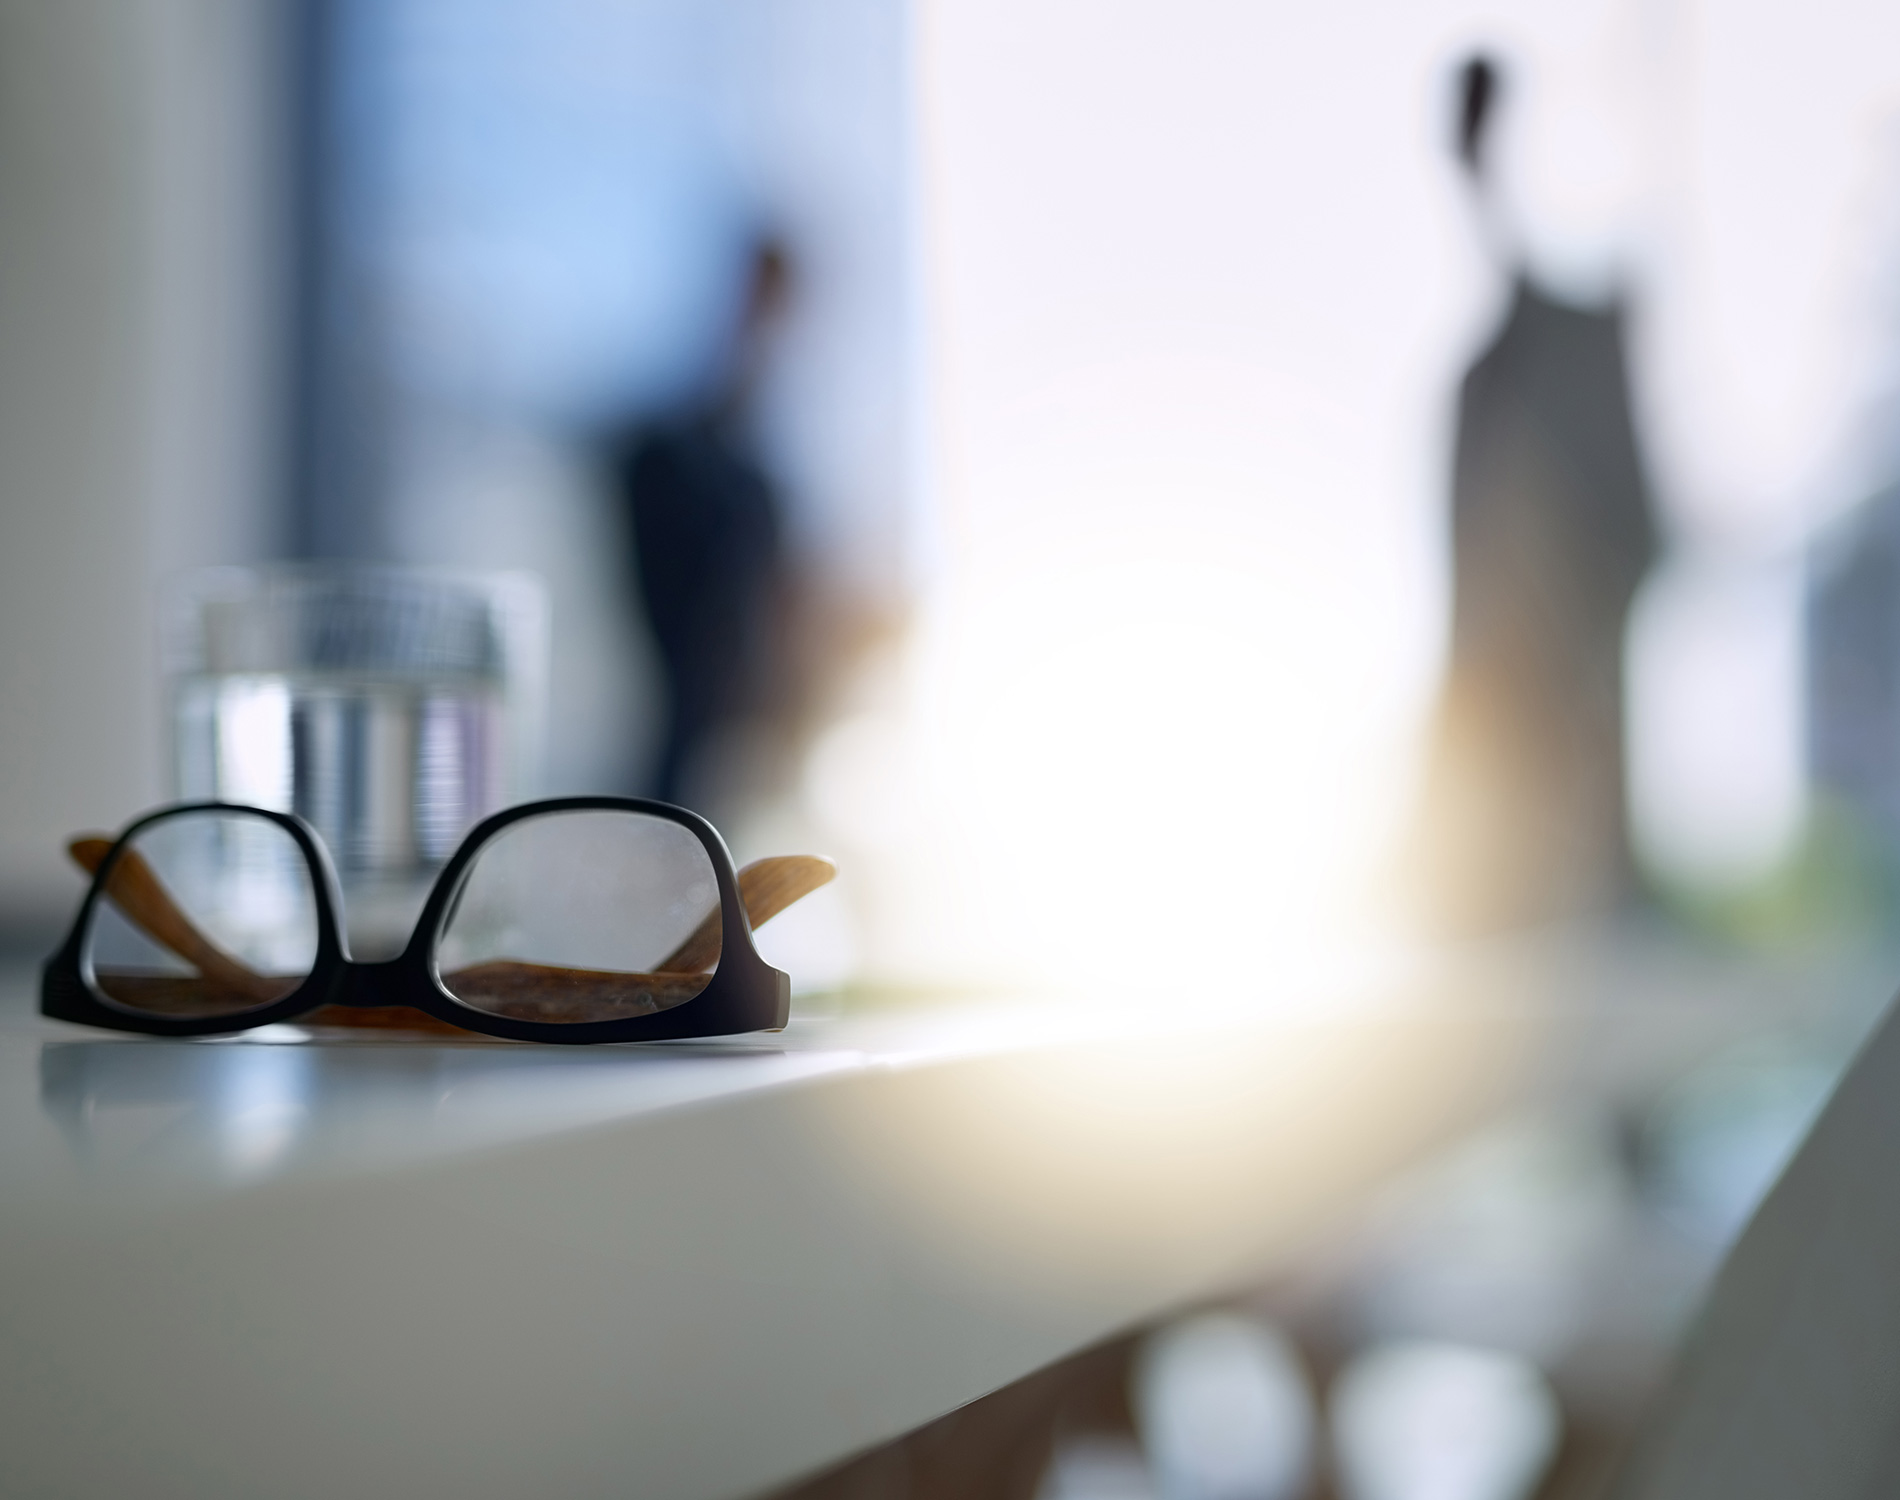 Glasses on a table